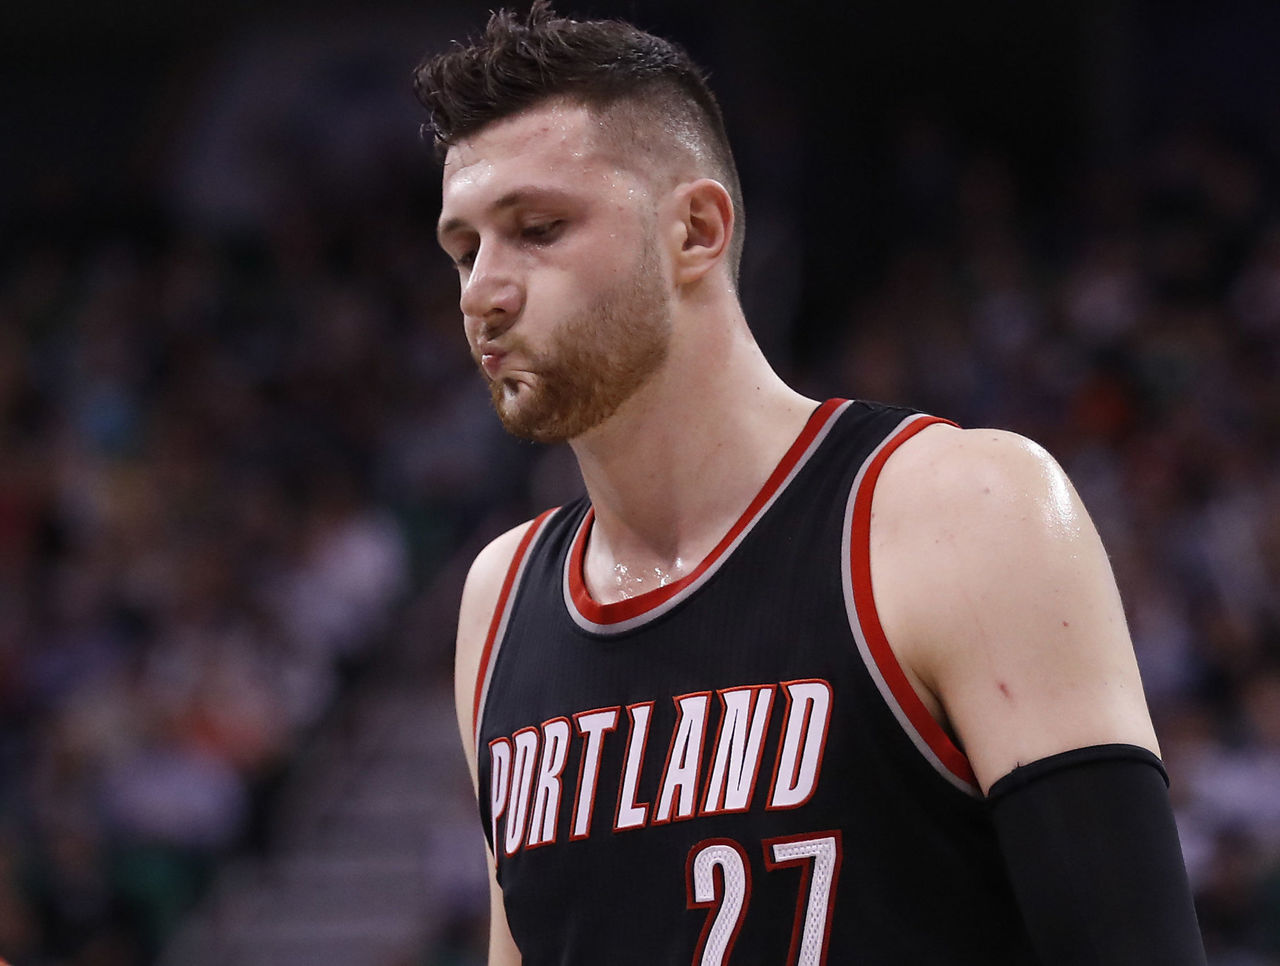 Cropped 2017 02 16t045507z 127482557 nocid rtrmadp 3 nba portland trail blazers at utah jazz